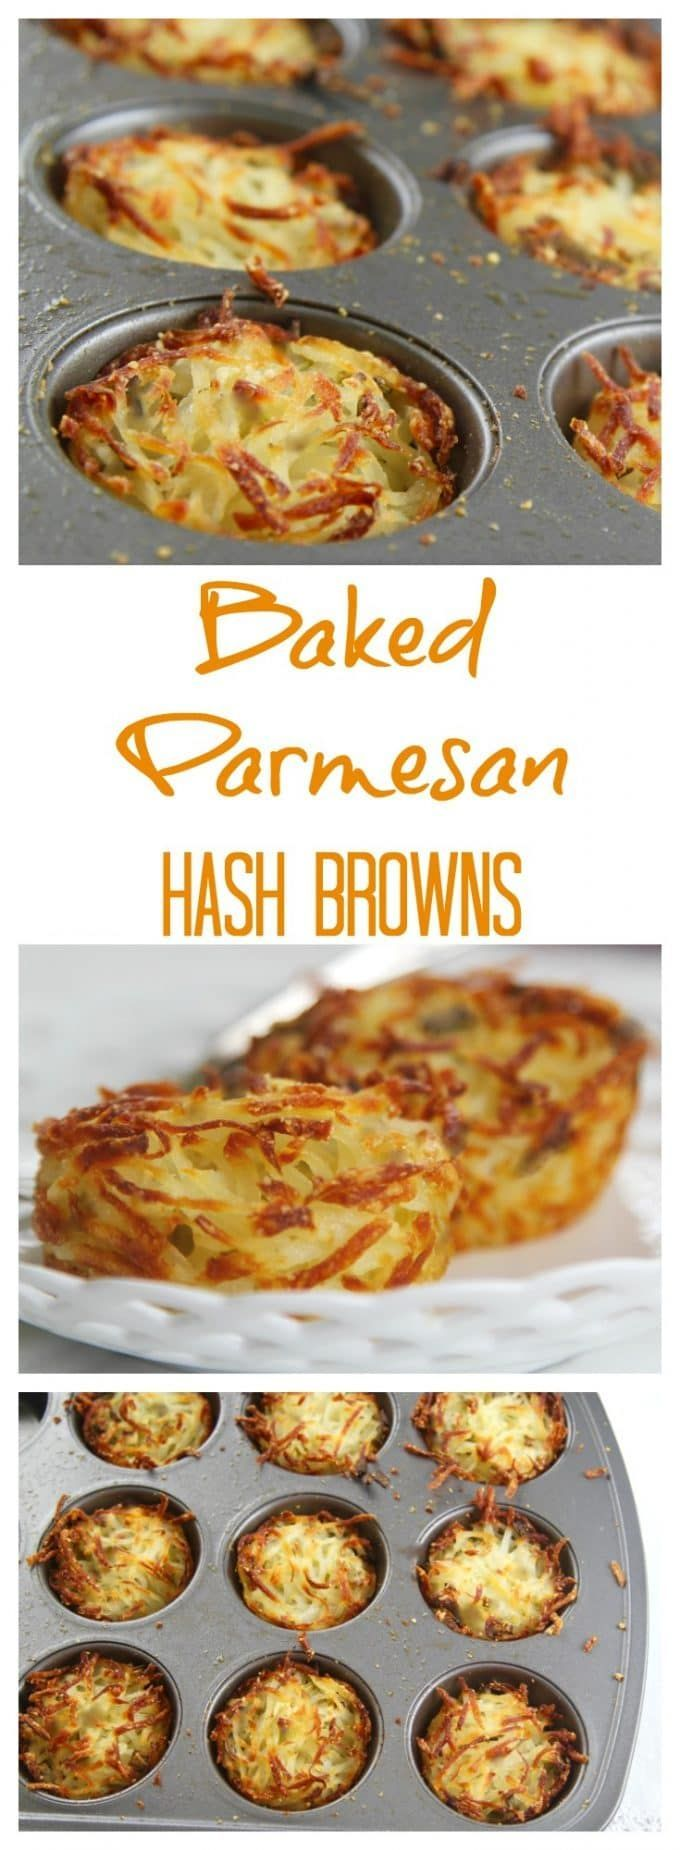 Easy BAKED Parmesan Hash Browns in muffin tins.